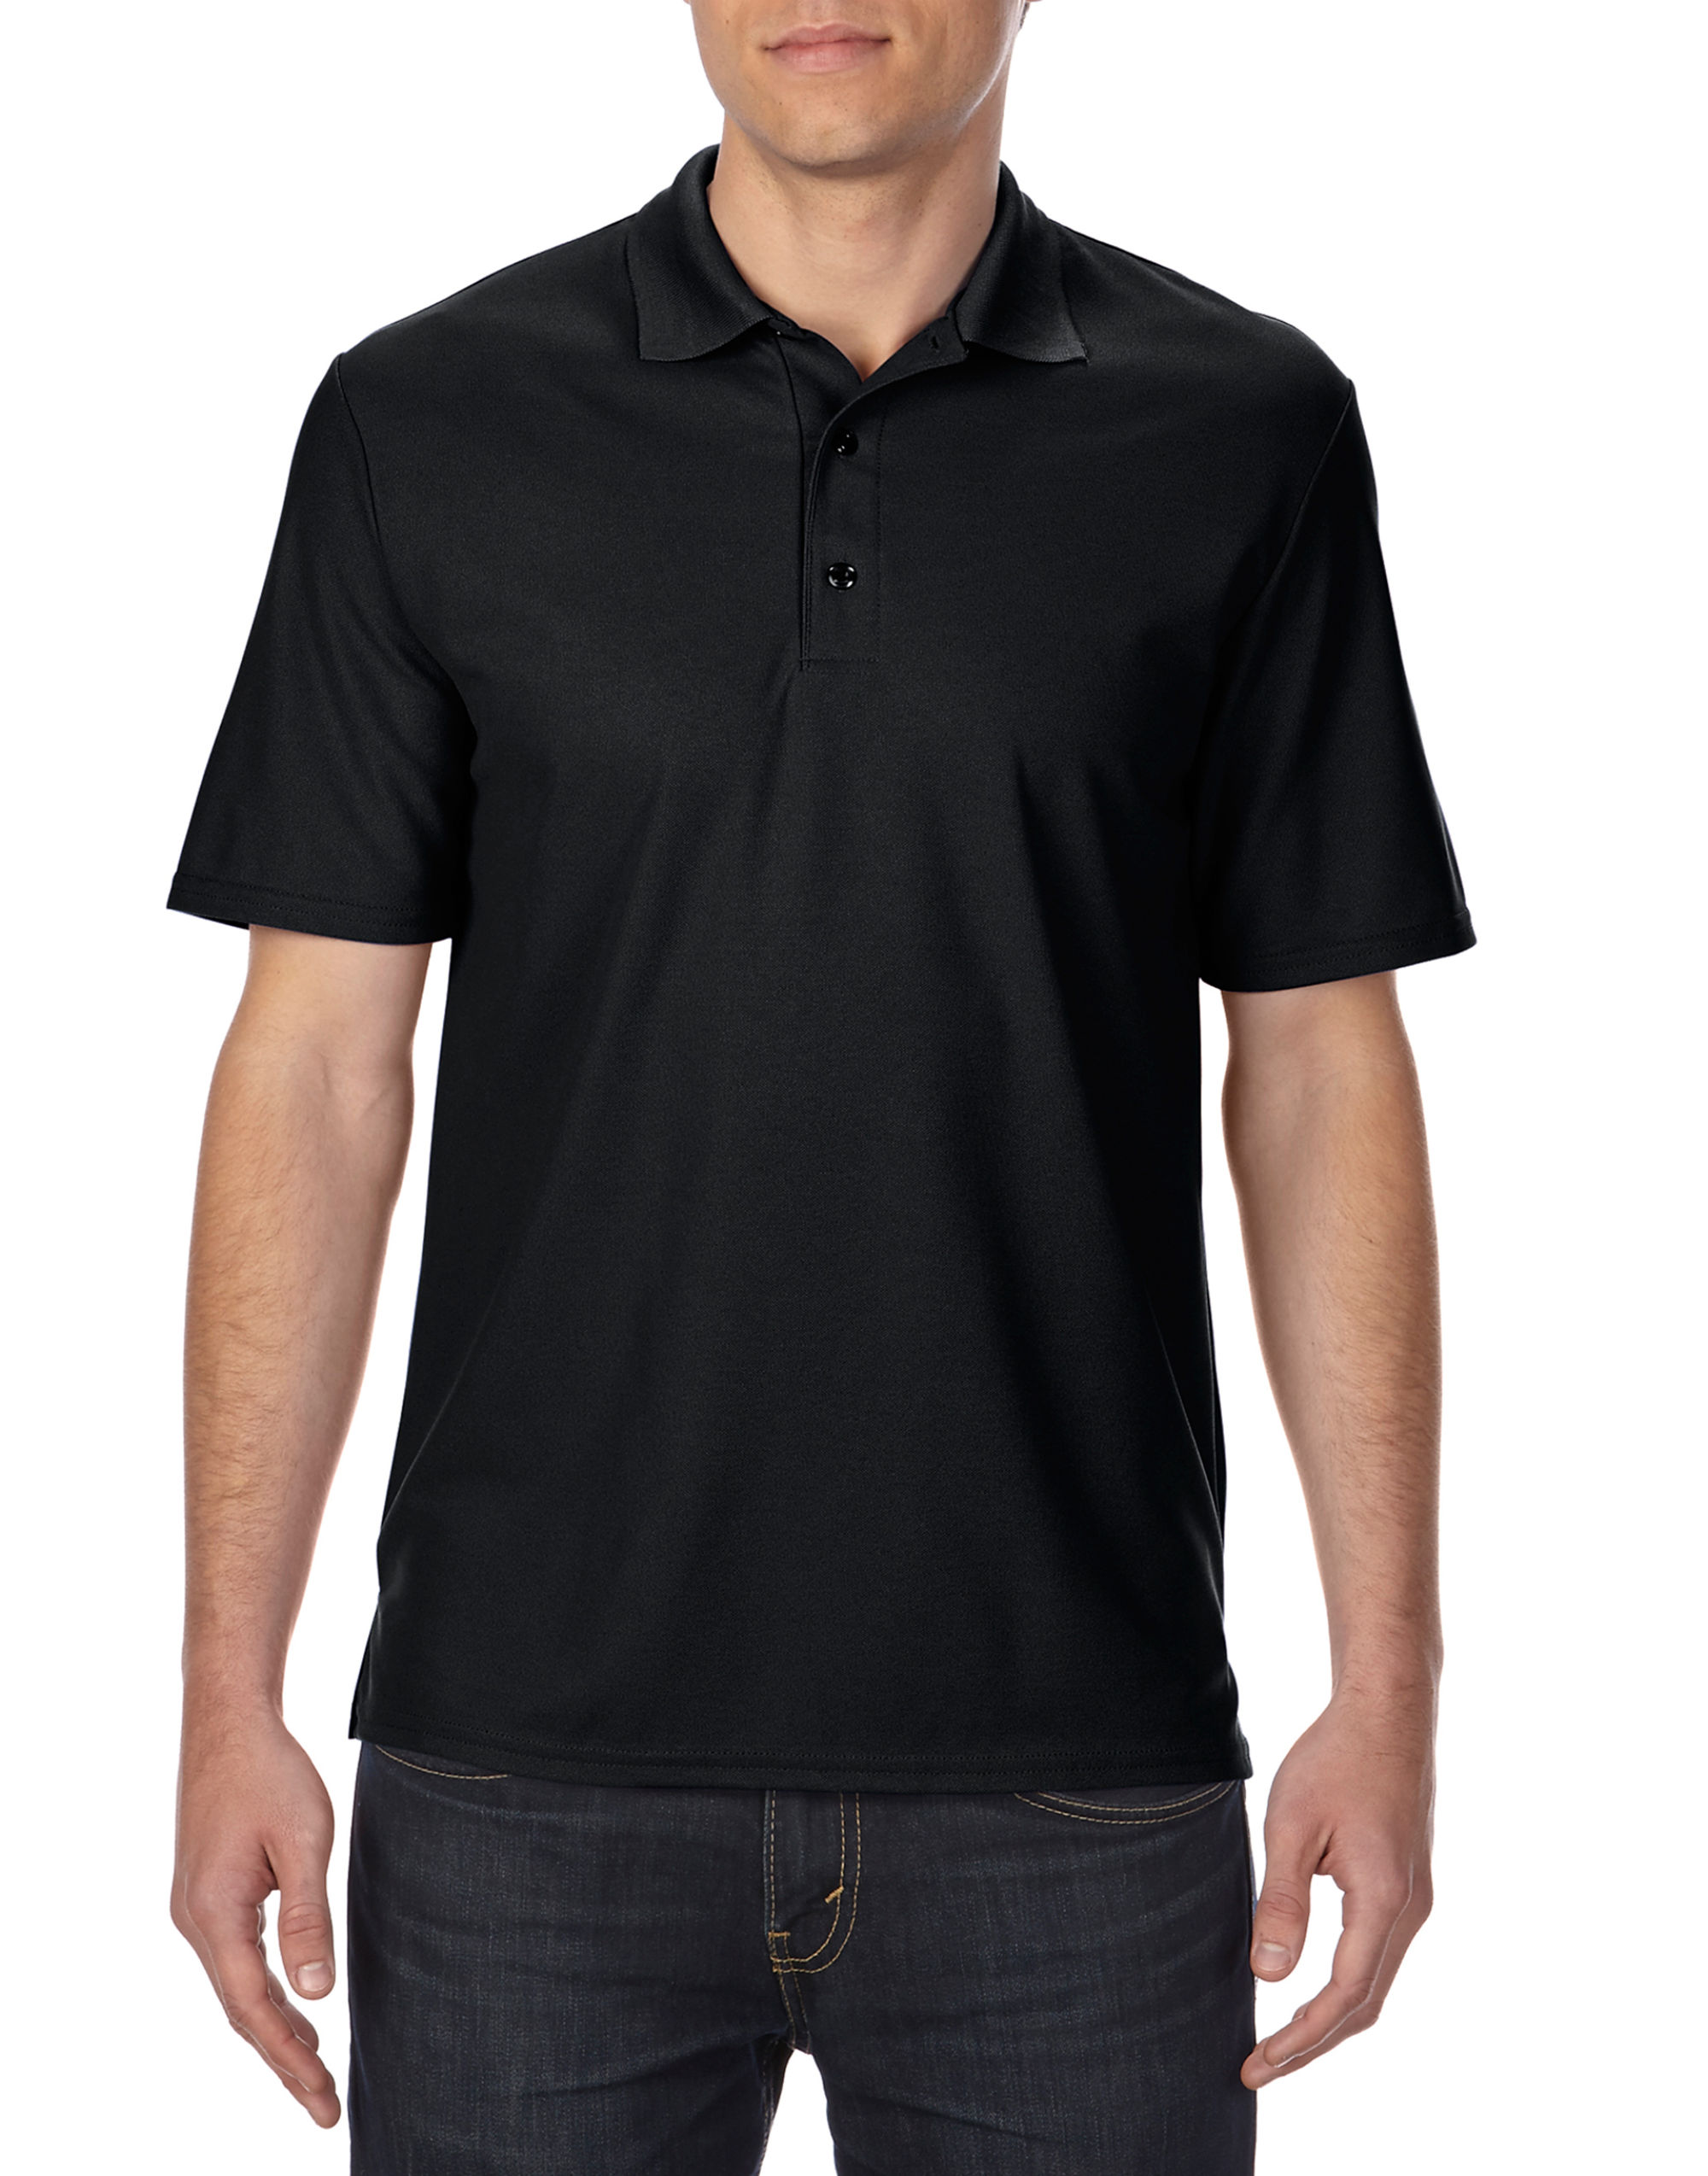 Performance Adult Sport Shirt